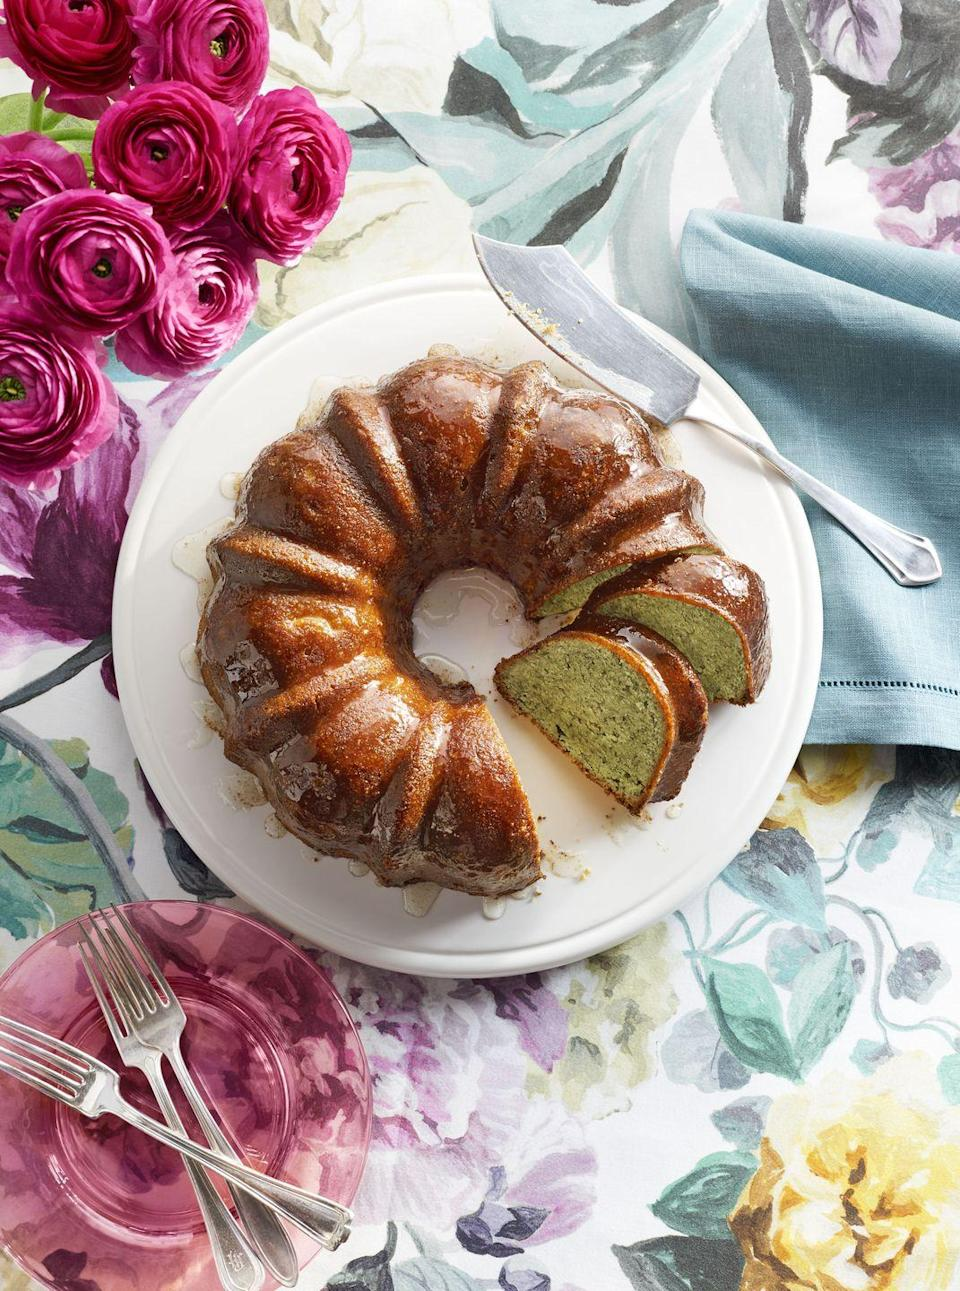 """<p>This bundt cake might look ordinary from the outside but once you cut dad a slice, he'll see its beautiful pistachio green inside.</p><p><em><a href=""""https://www.countryliving.com/food-drinks/recipes/a37735/pistachio-lemon-bundt-cake-recipe/"""" rel=""""nofollow noopener"""" target=""""_blank"""" data-ylk=""""slk:Get the recipe from Country Living »"""" class=""""link rapid-noclick-resp"""">Get the recipe from Country Living »</a></em></p>"""